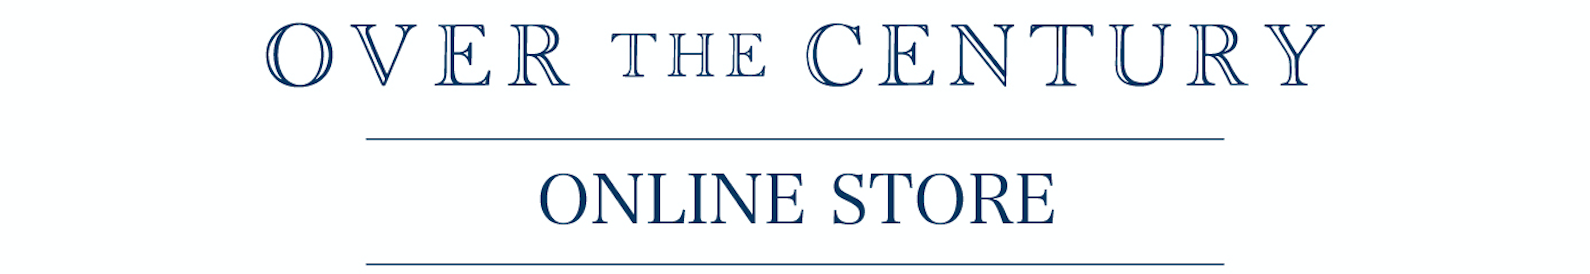 OVER THE CENTURY ONLINE STORE